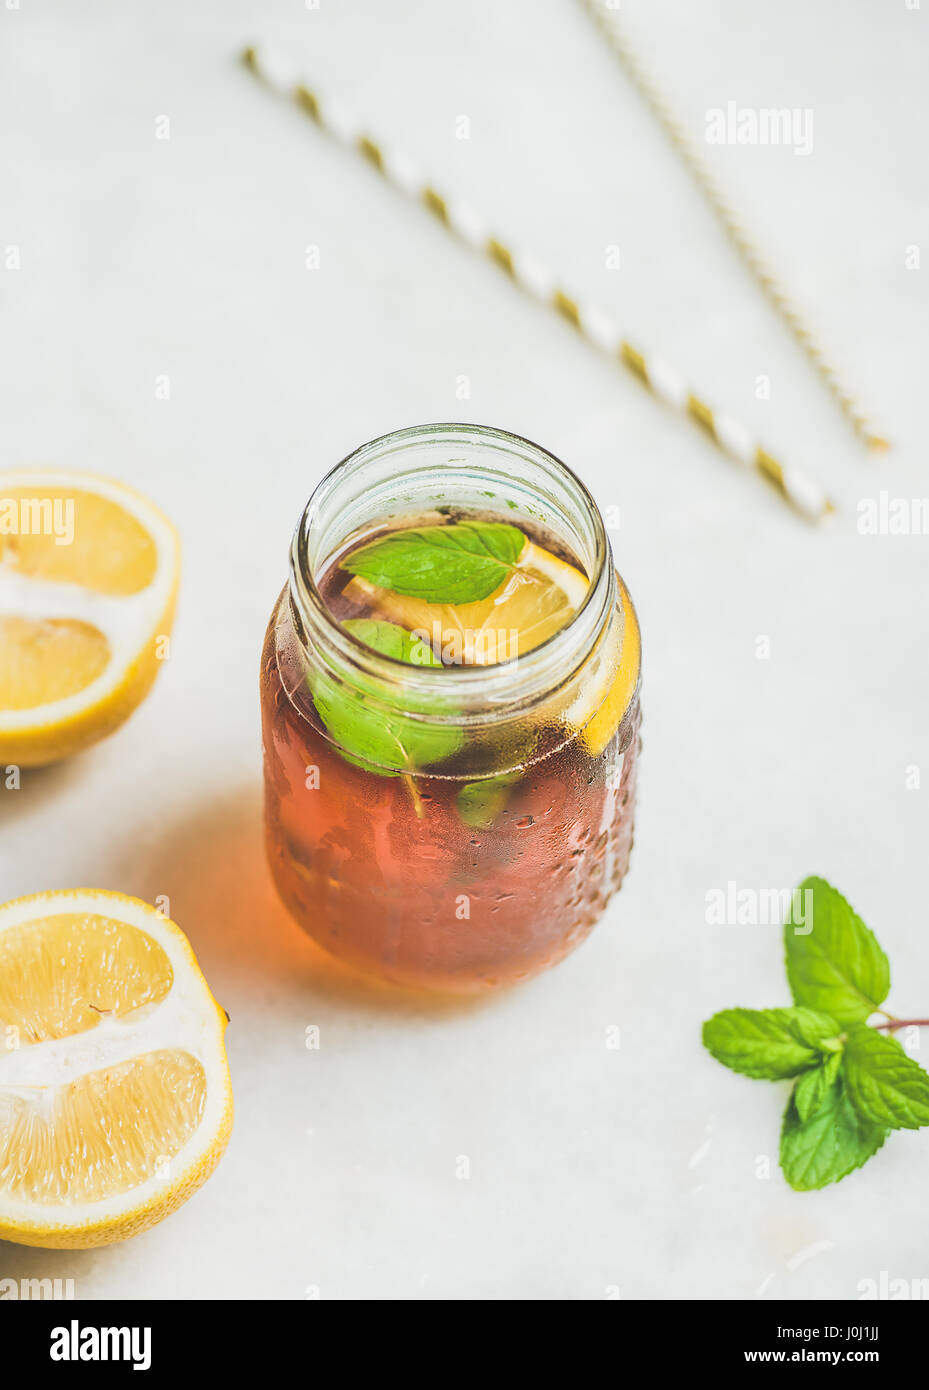 Summer cold Iced tea with lemon slices and fresh herbs - Stock Image